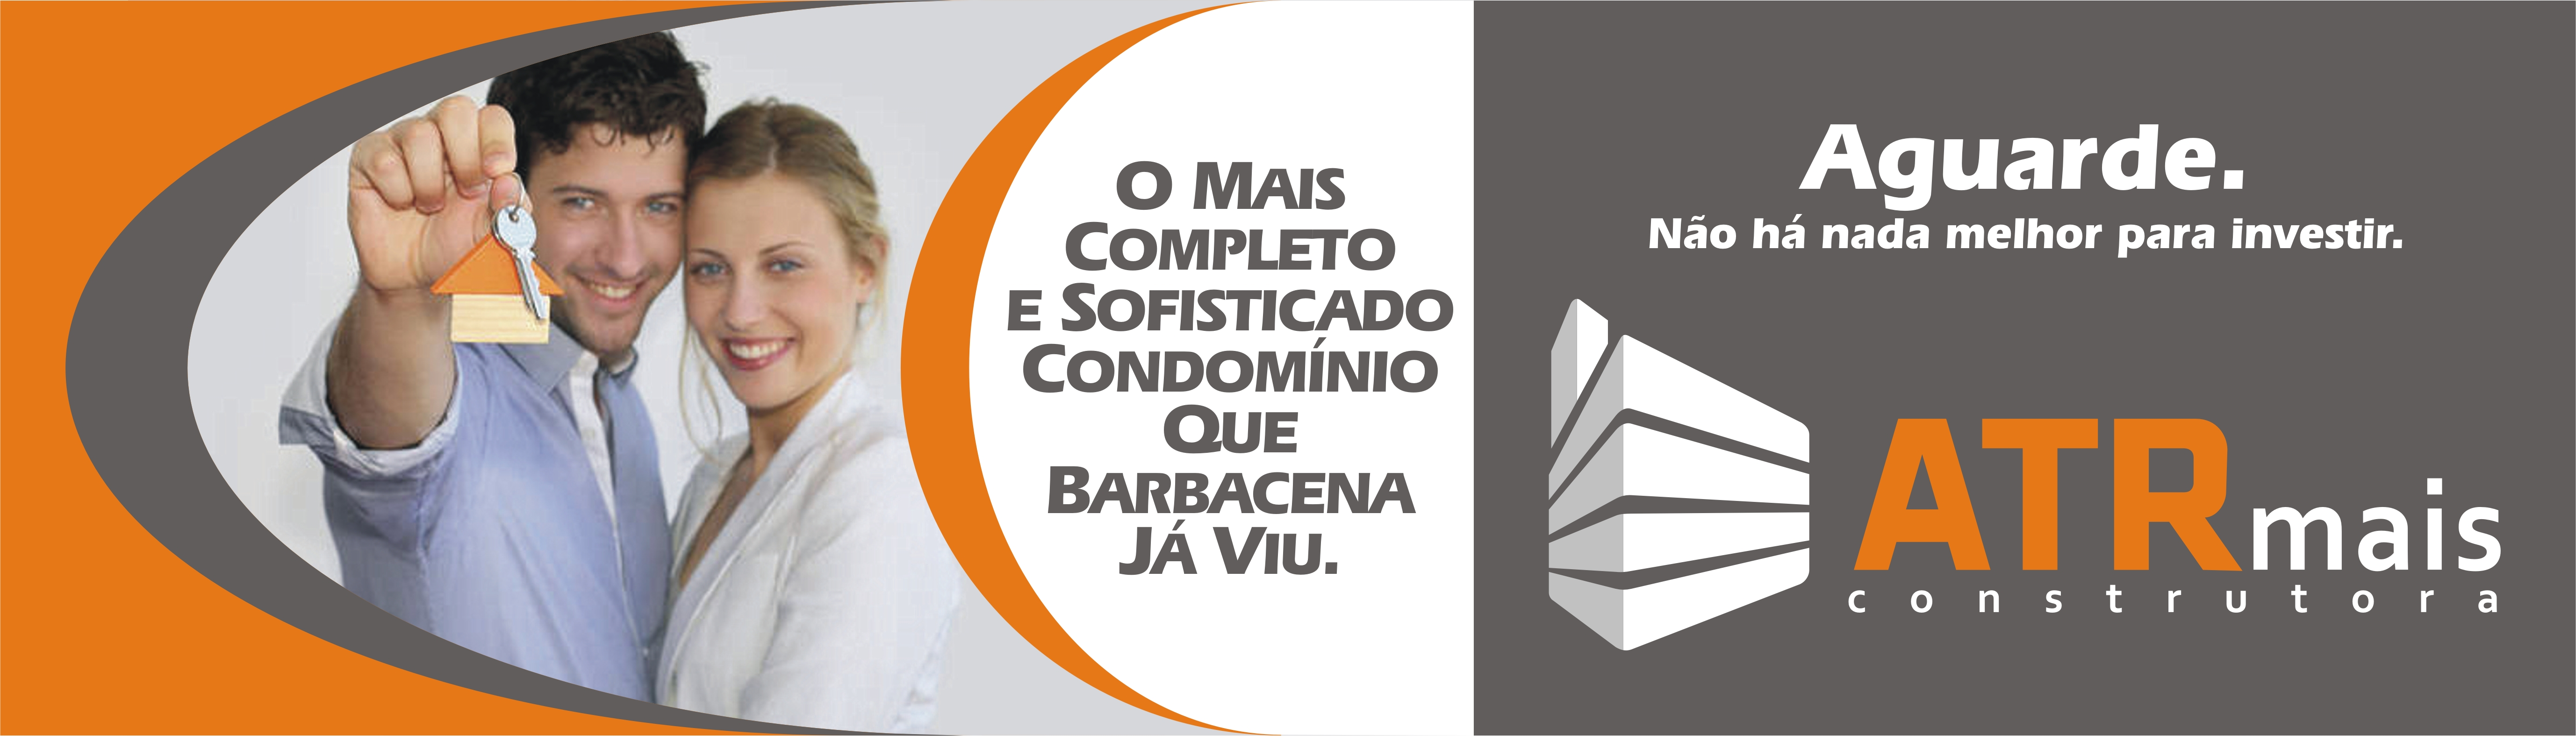 0-a-outdoor-100-x-40m-barbacena-mg-aprovado-03